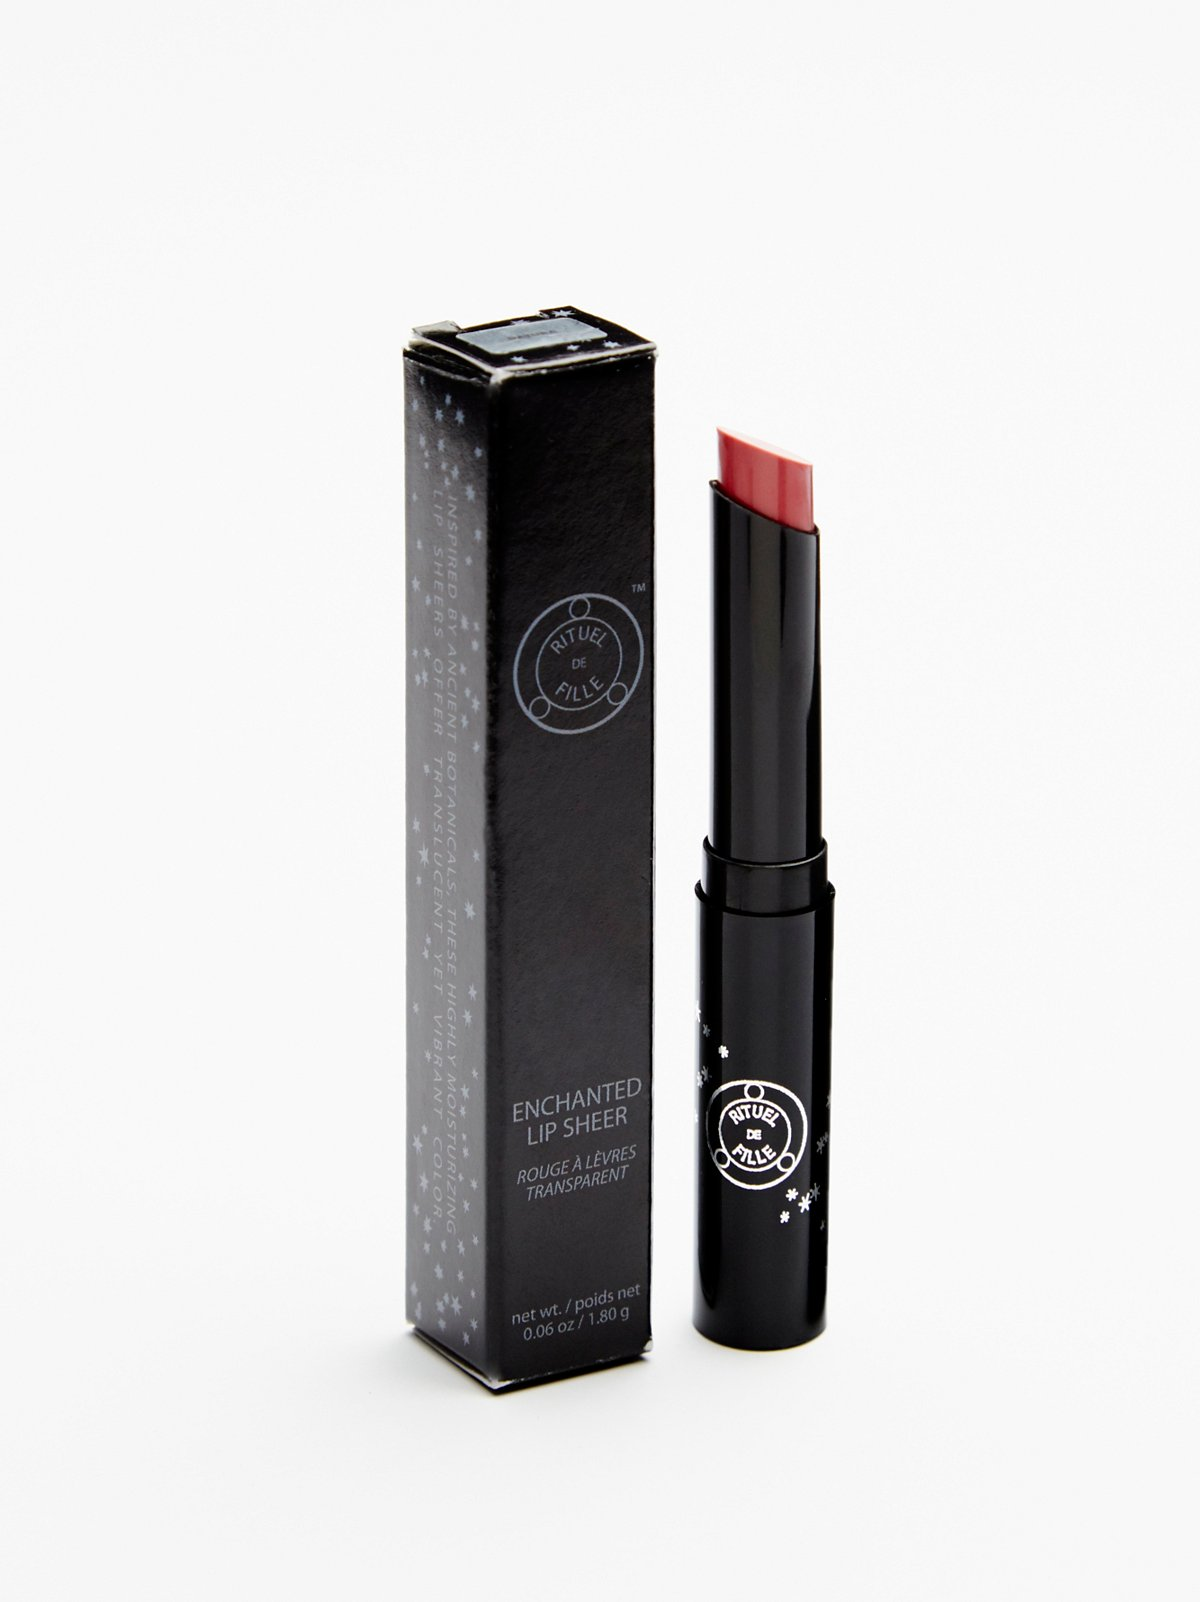 Enchanted Lip Sheer